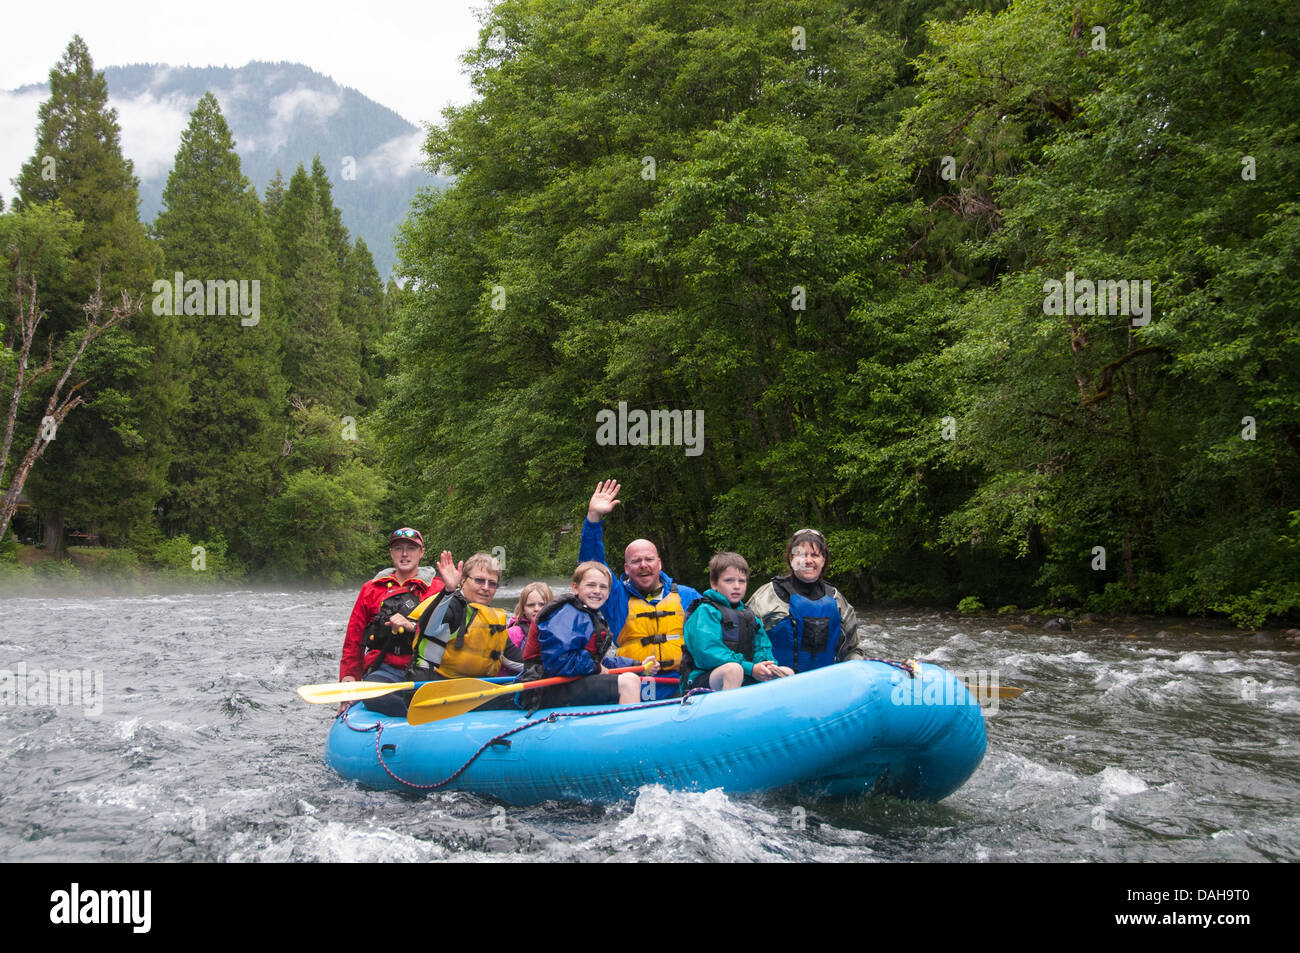 Family enjoying a whitewater rafting trip on the McKenzie River in Oregon - Stock Image